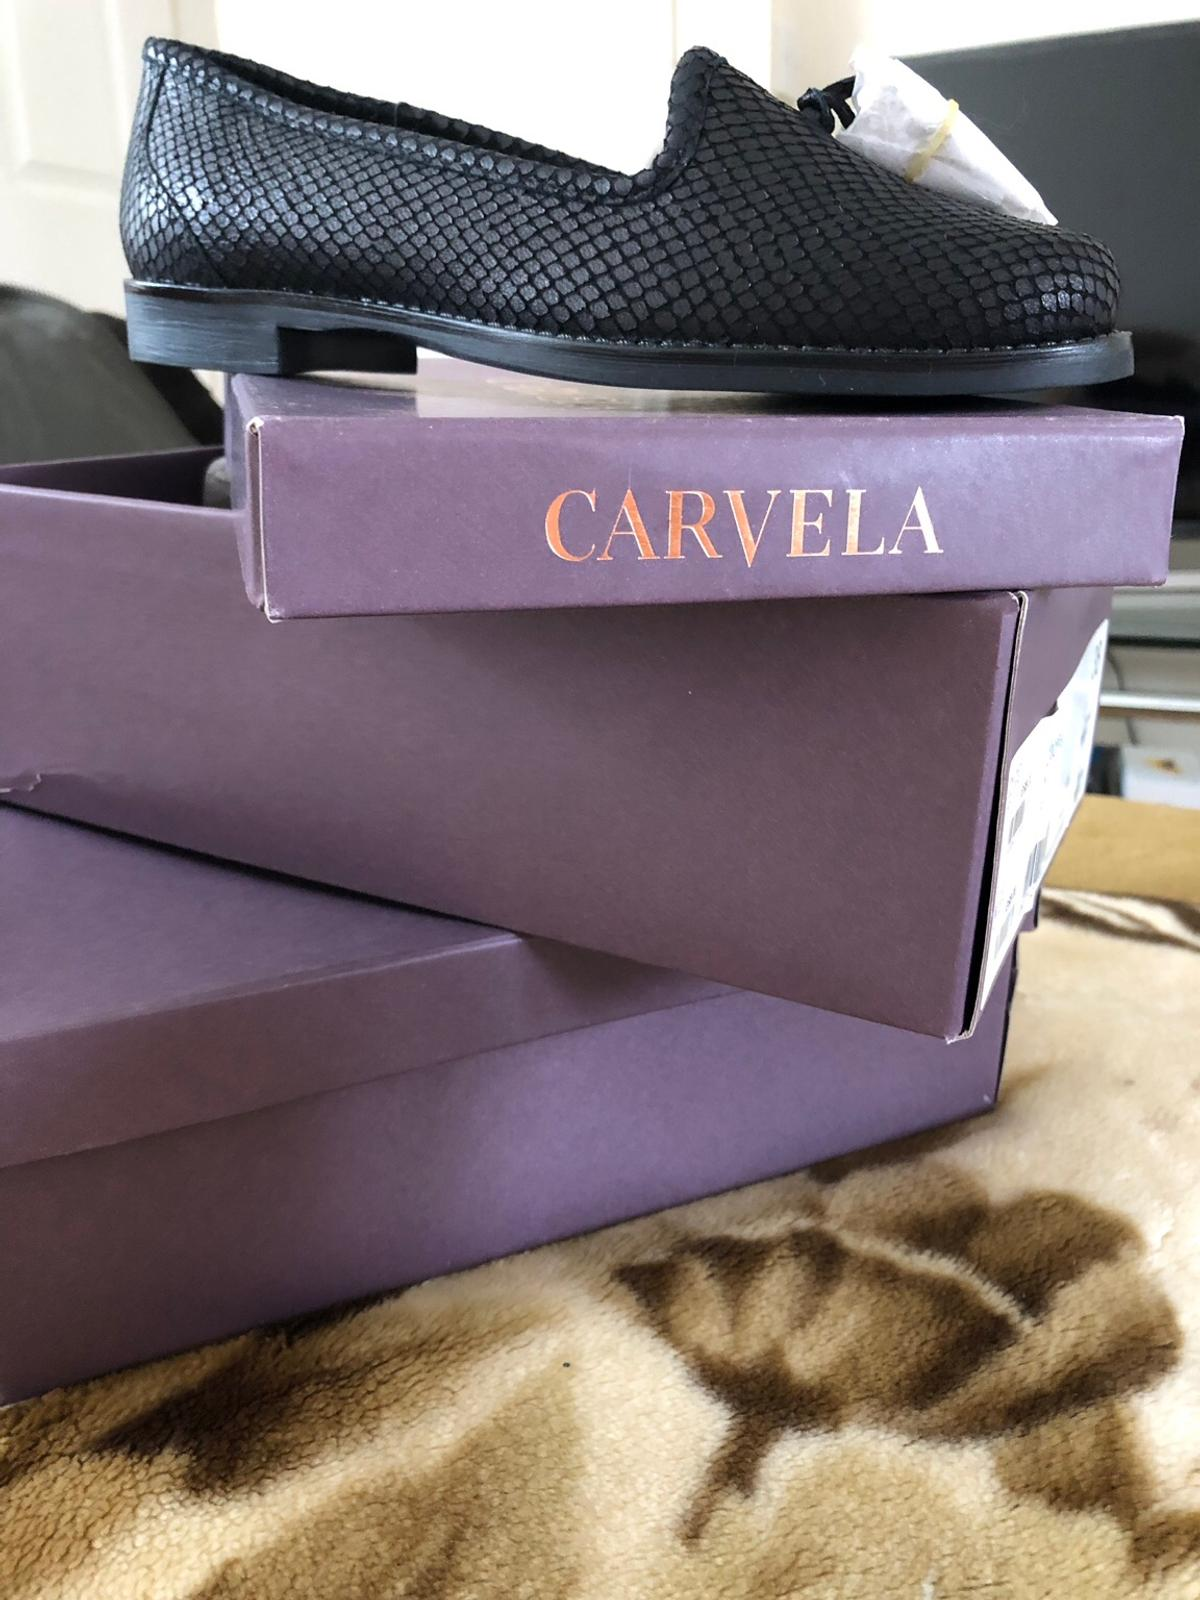 Ladies Carvela, Never used, new, 2 sizes 37&38 each £25. Perfect condition